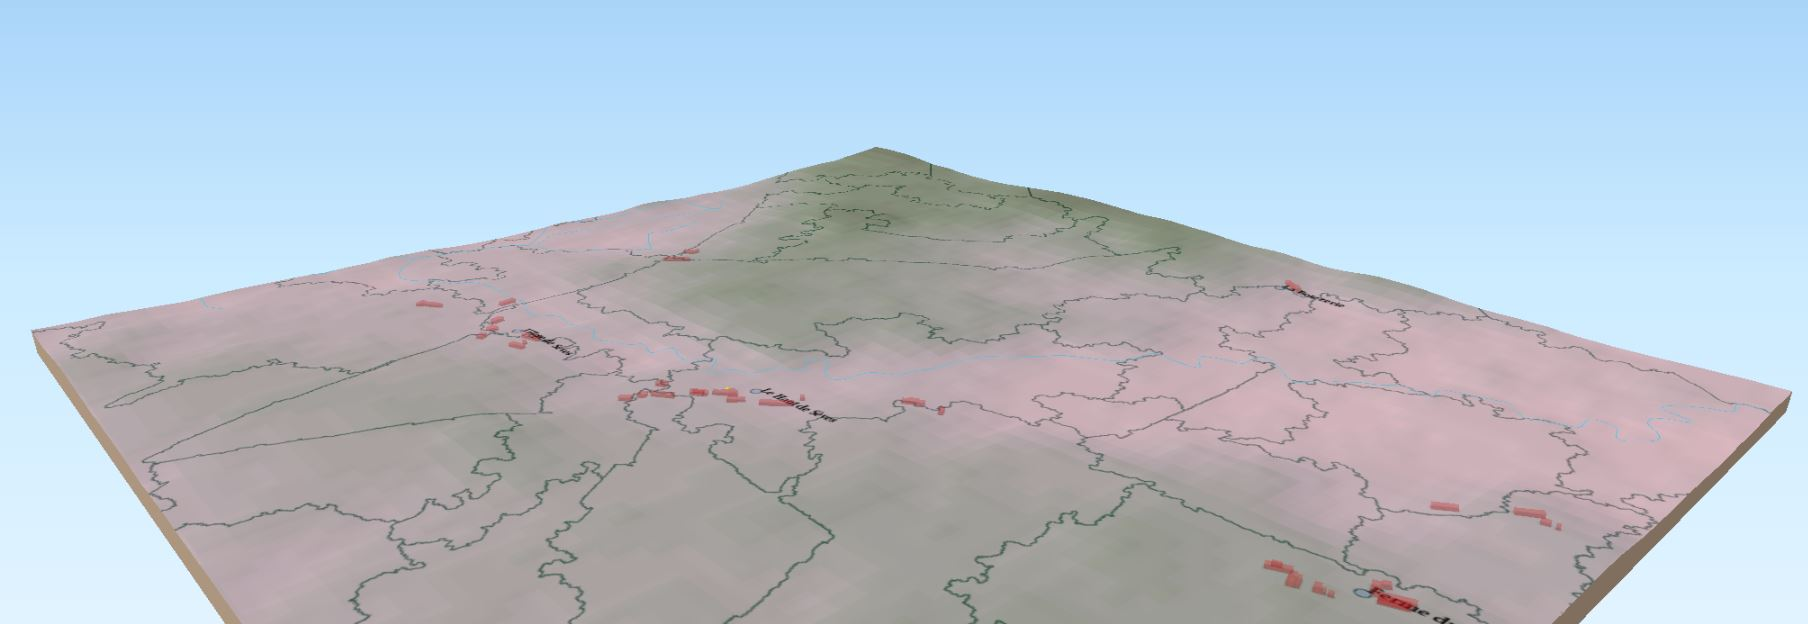 Catchments prior to calculating flood plain. Using QGIS/GRAS, SRTM30 DEM, and OSM as stream centerline.